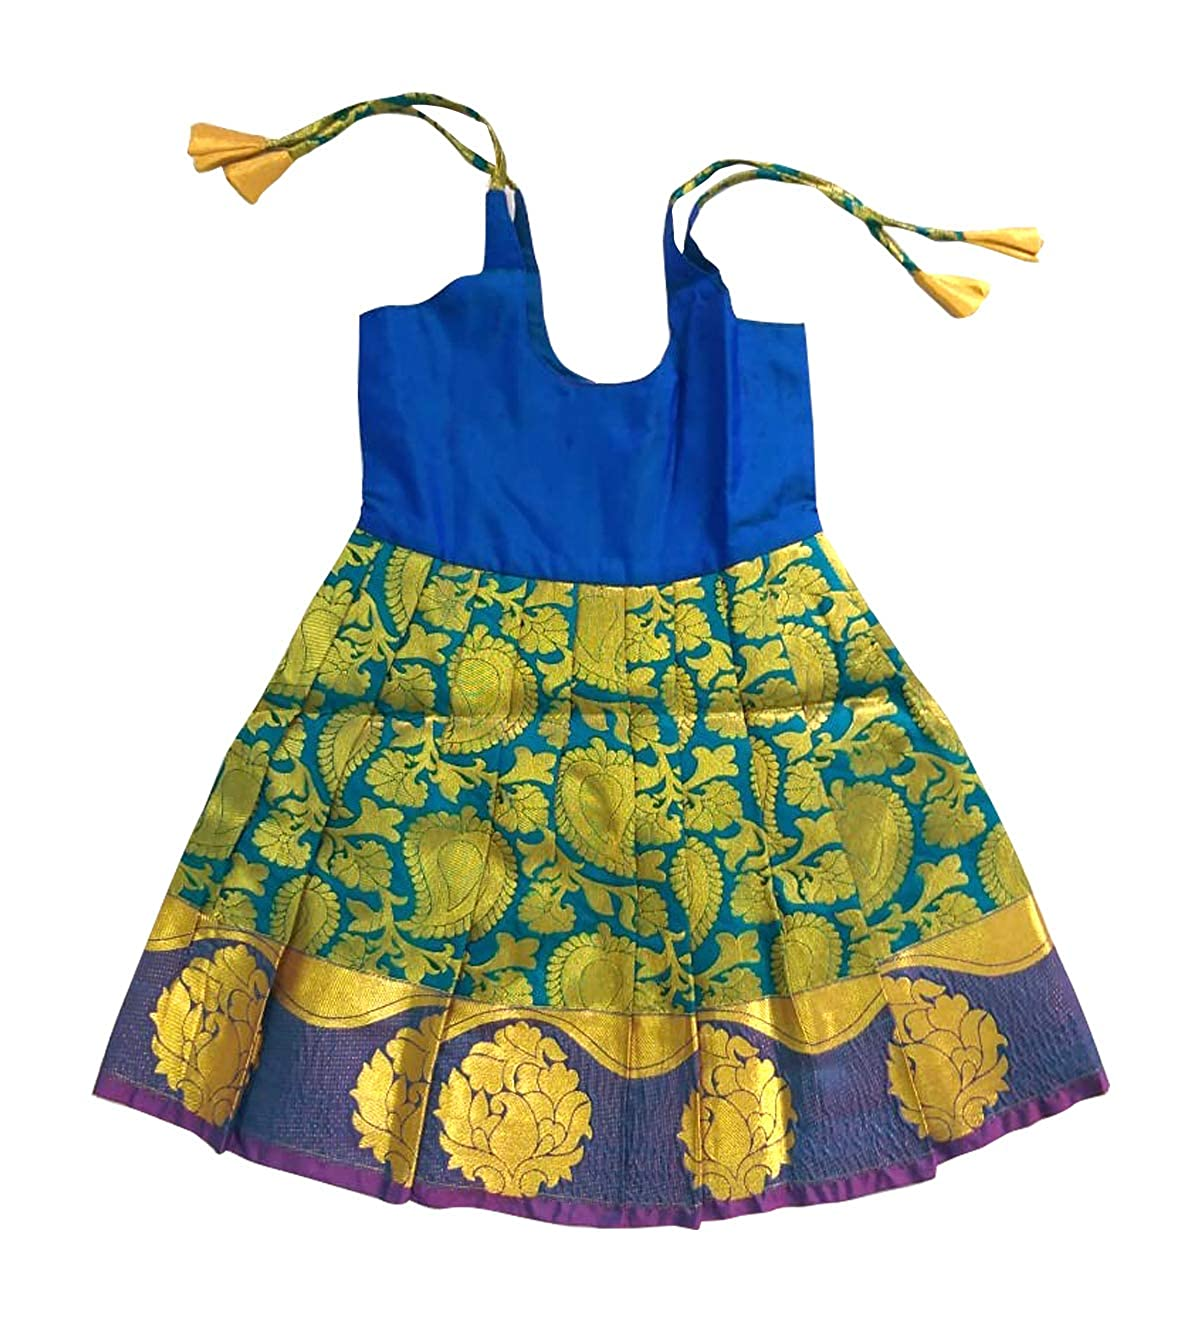 547399f3fd7a2 Pattu pavadai silk frock blue for baby girls kids year clothing accessories  jpg 1200x1320 One year